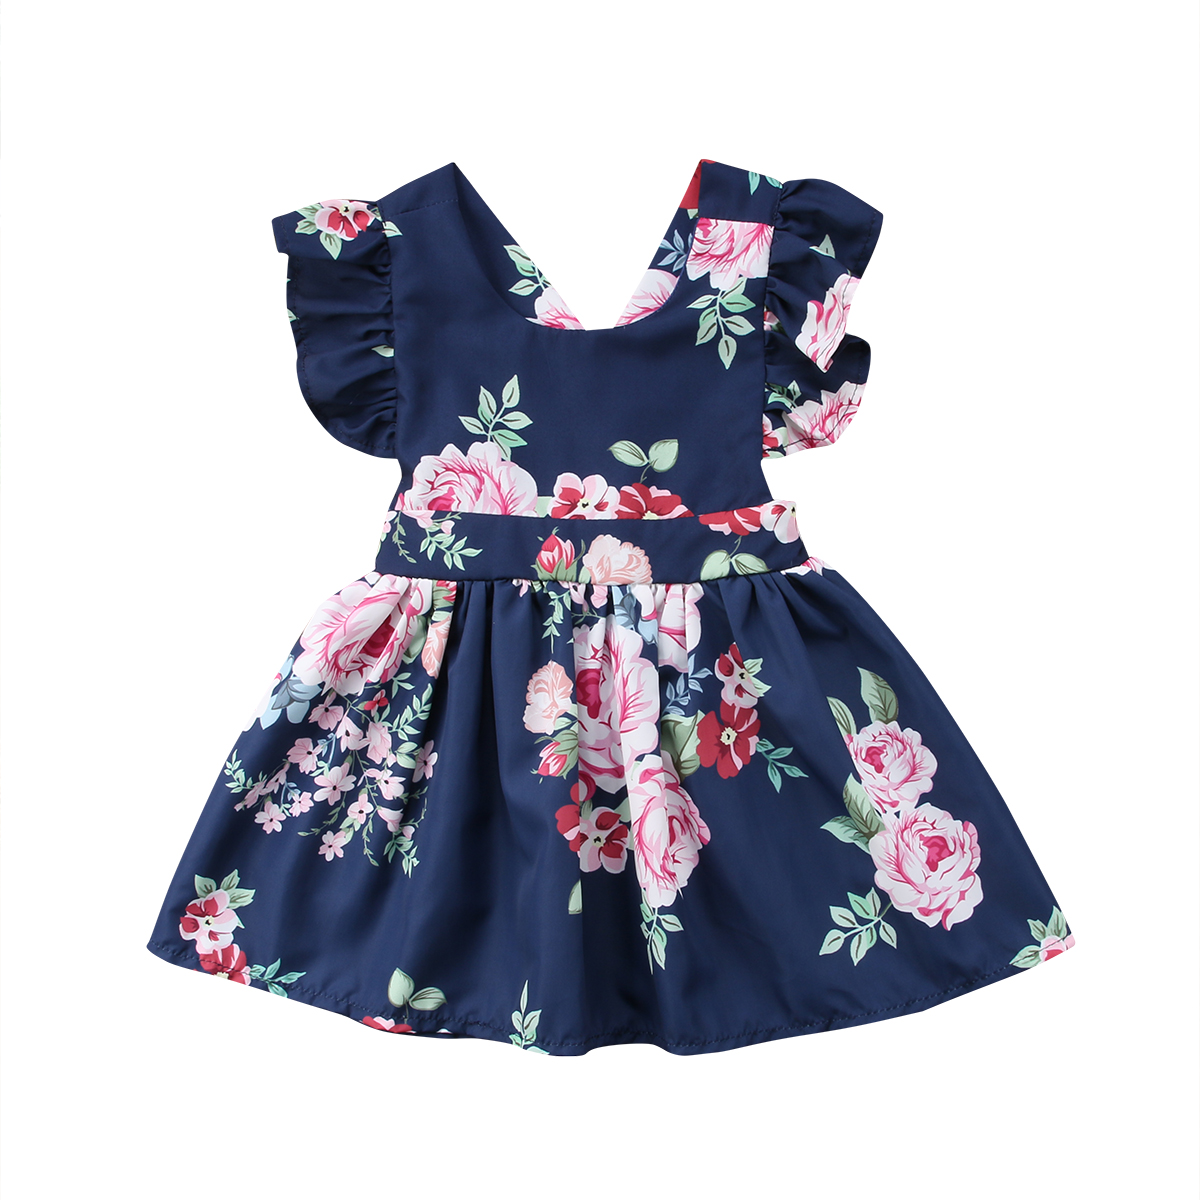 2018 Fashion Toddler Kids Baby Girls Clothes Flower Backless Party Pageant Tutu Gown Dress Sundress Children Clothing